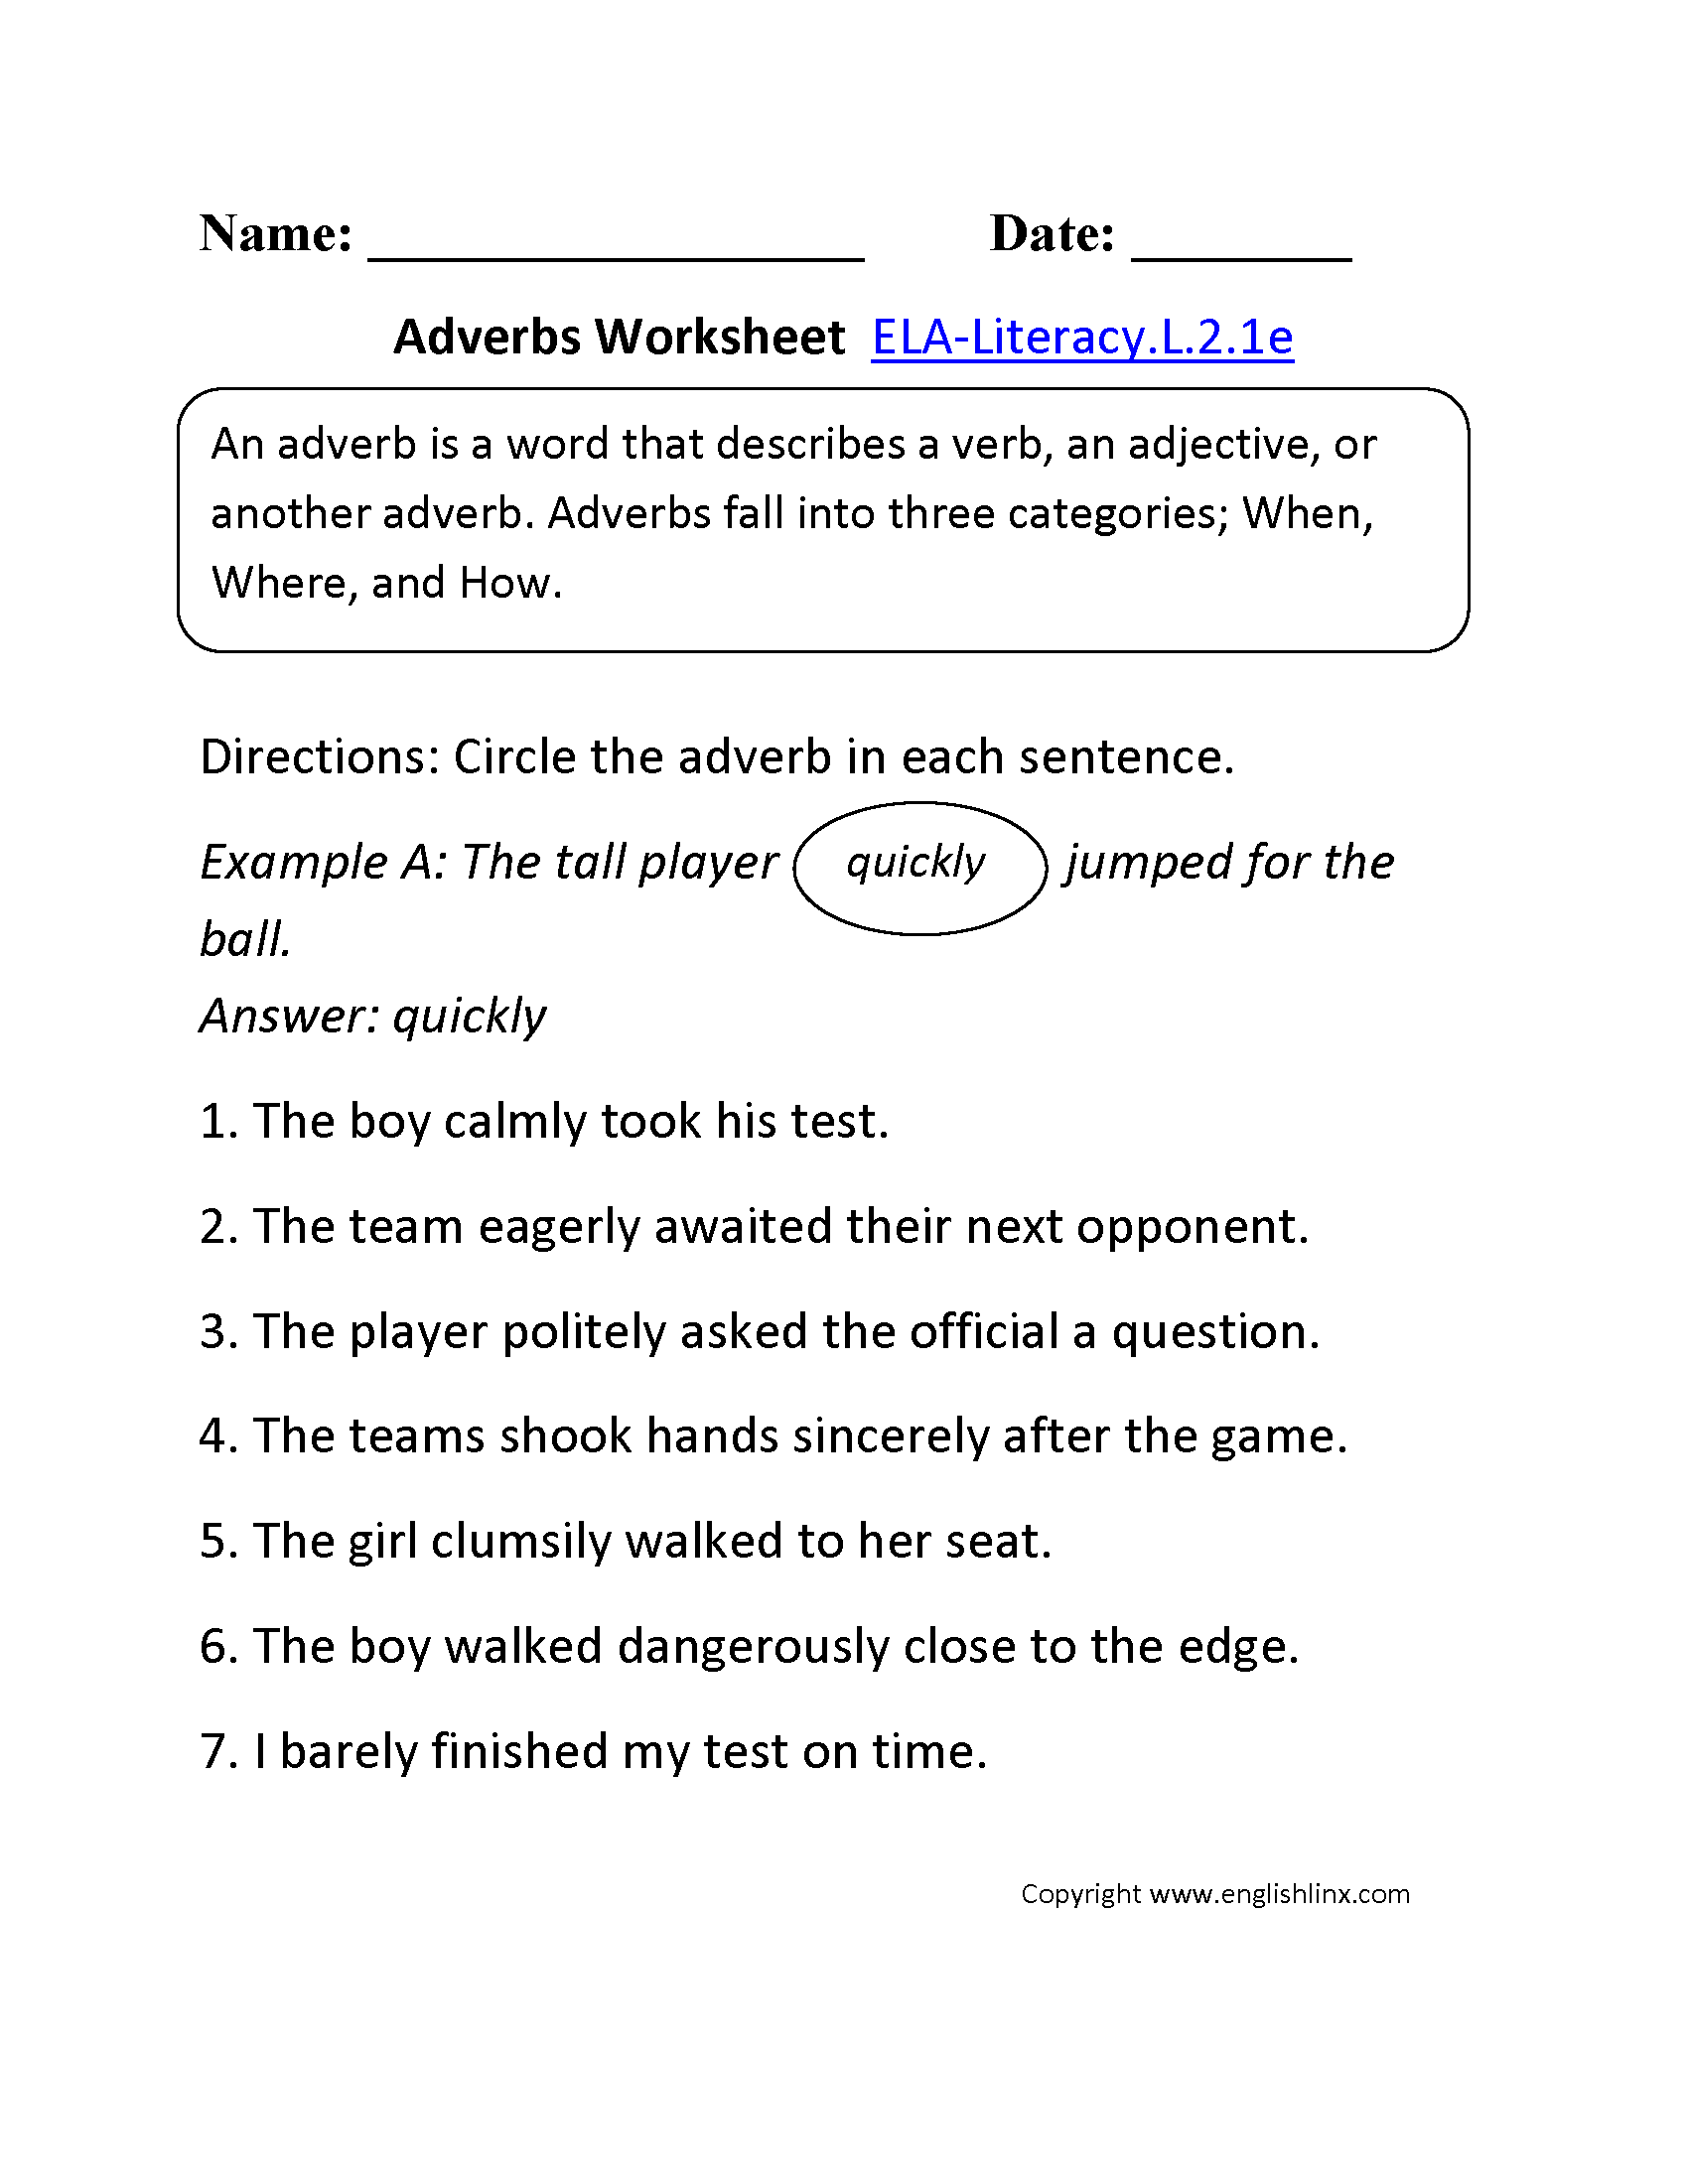 Worksheet Adverbs Grade 2 2nd grade common core language worksheets adverbs worksheet 1 ela literacy l 2 1e worksheet